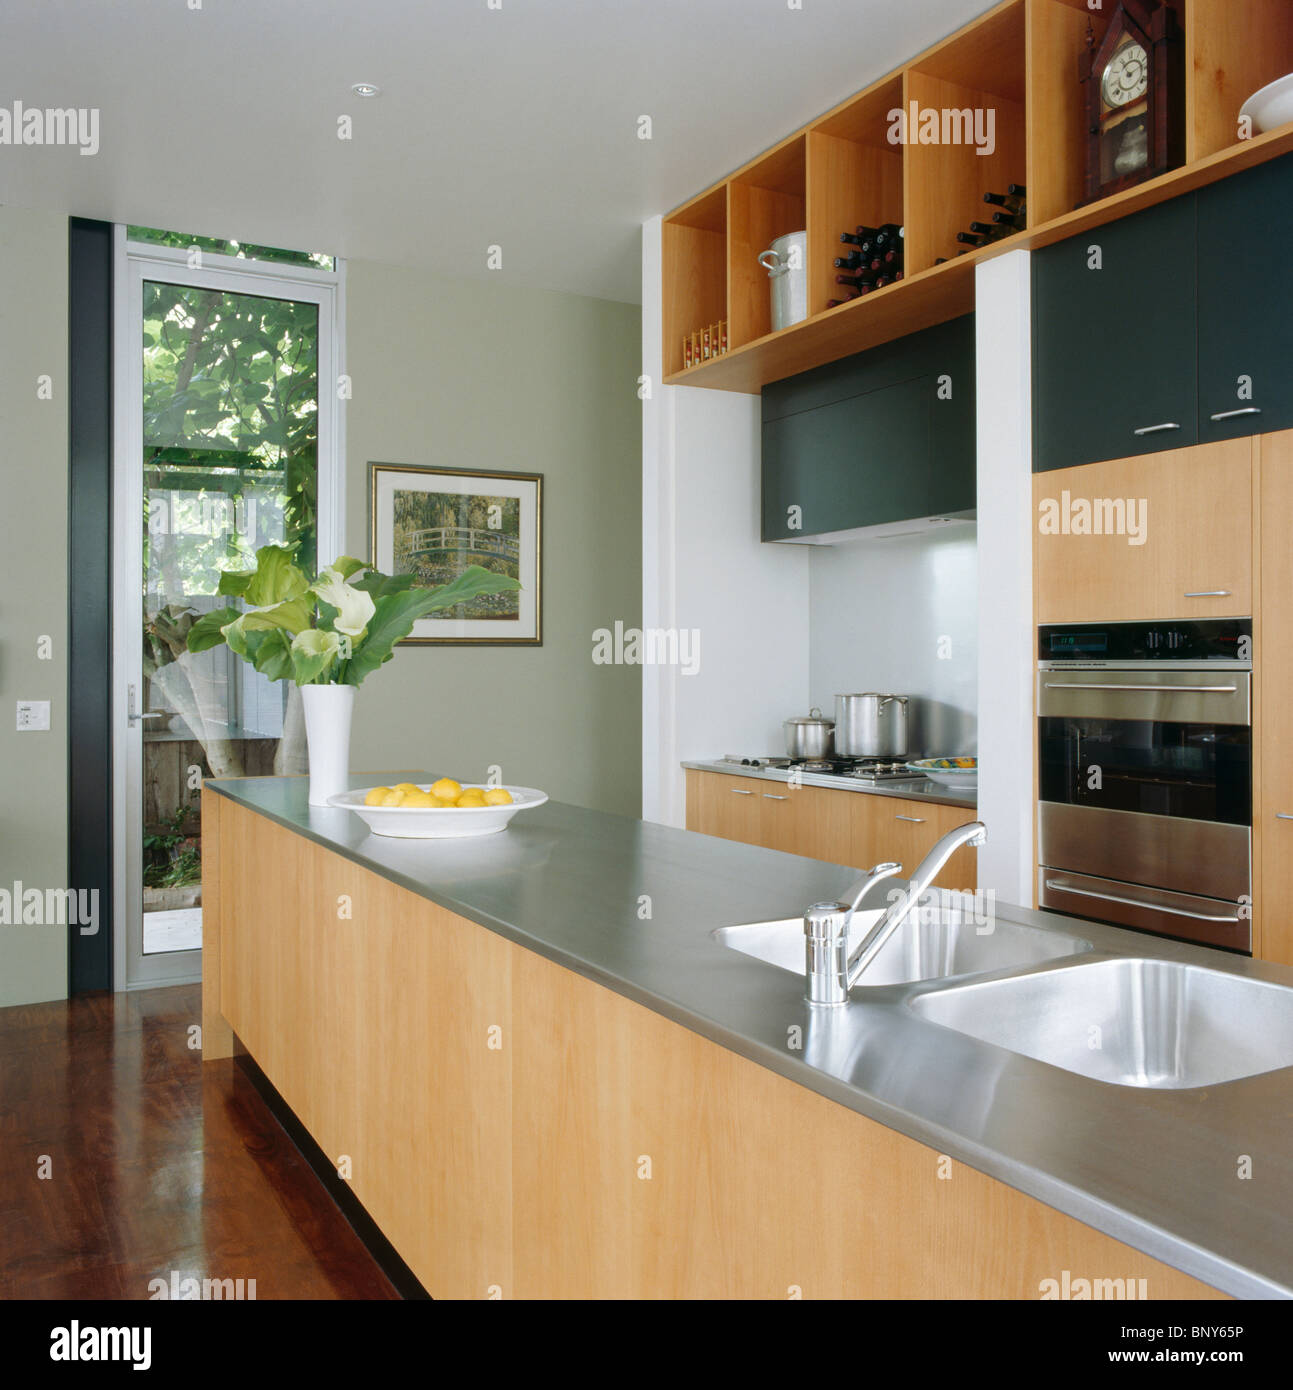 Stainless Steel Worktop And Double Sink In Island Unit In